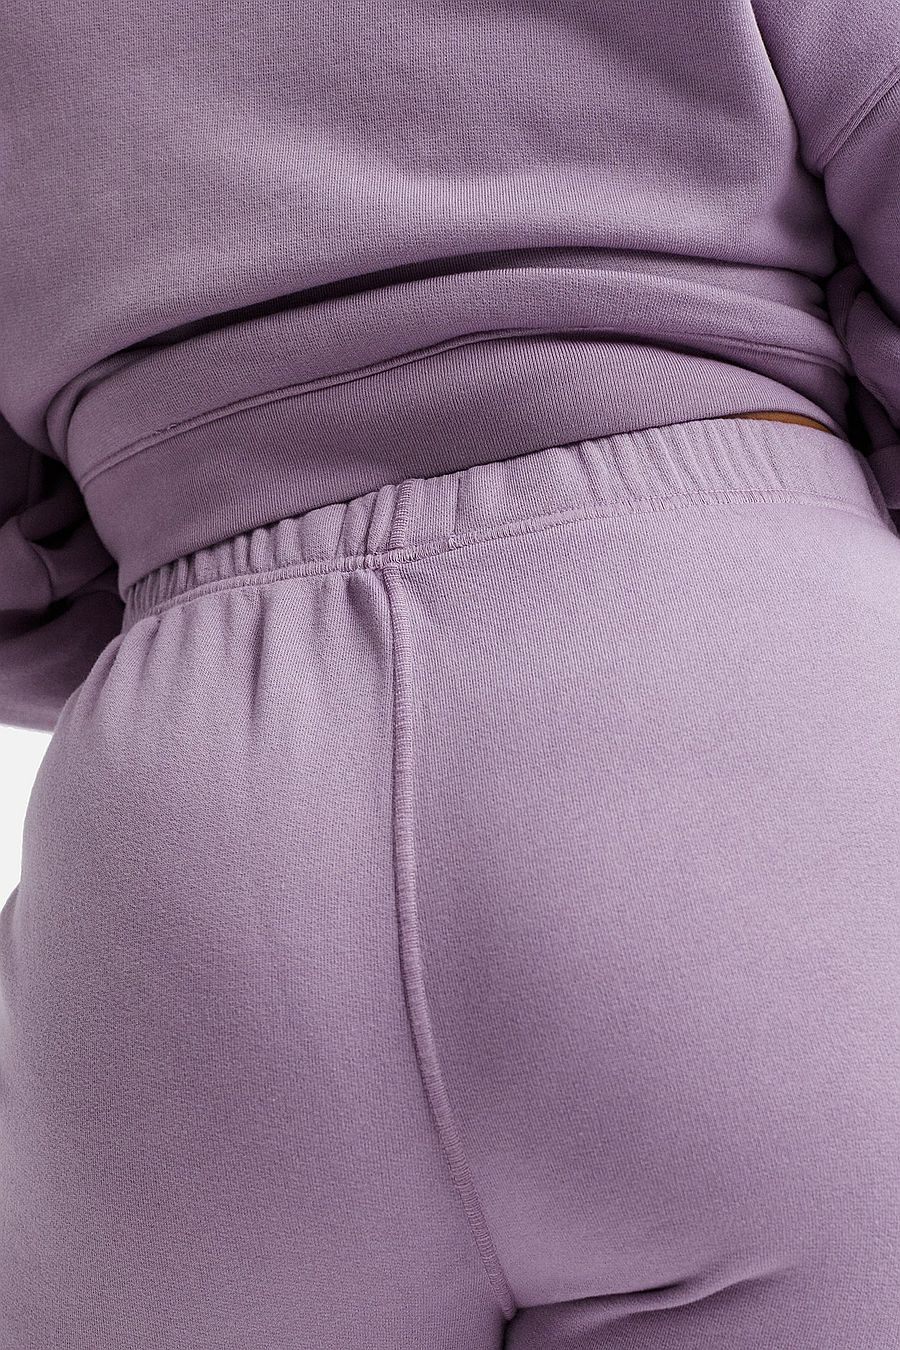 MATE The Label Fleece Relaxed Pocket Sweatpant - LAVENDER